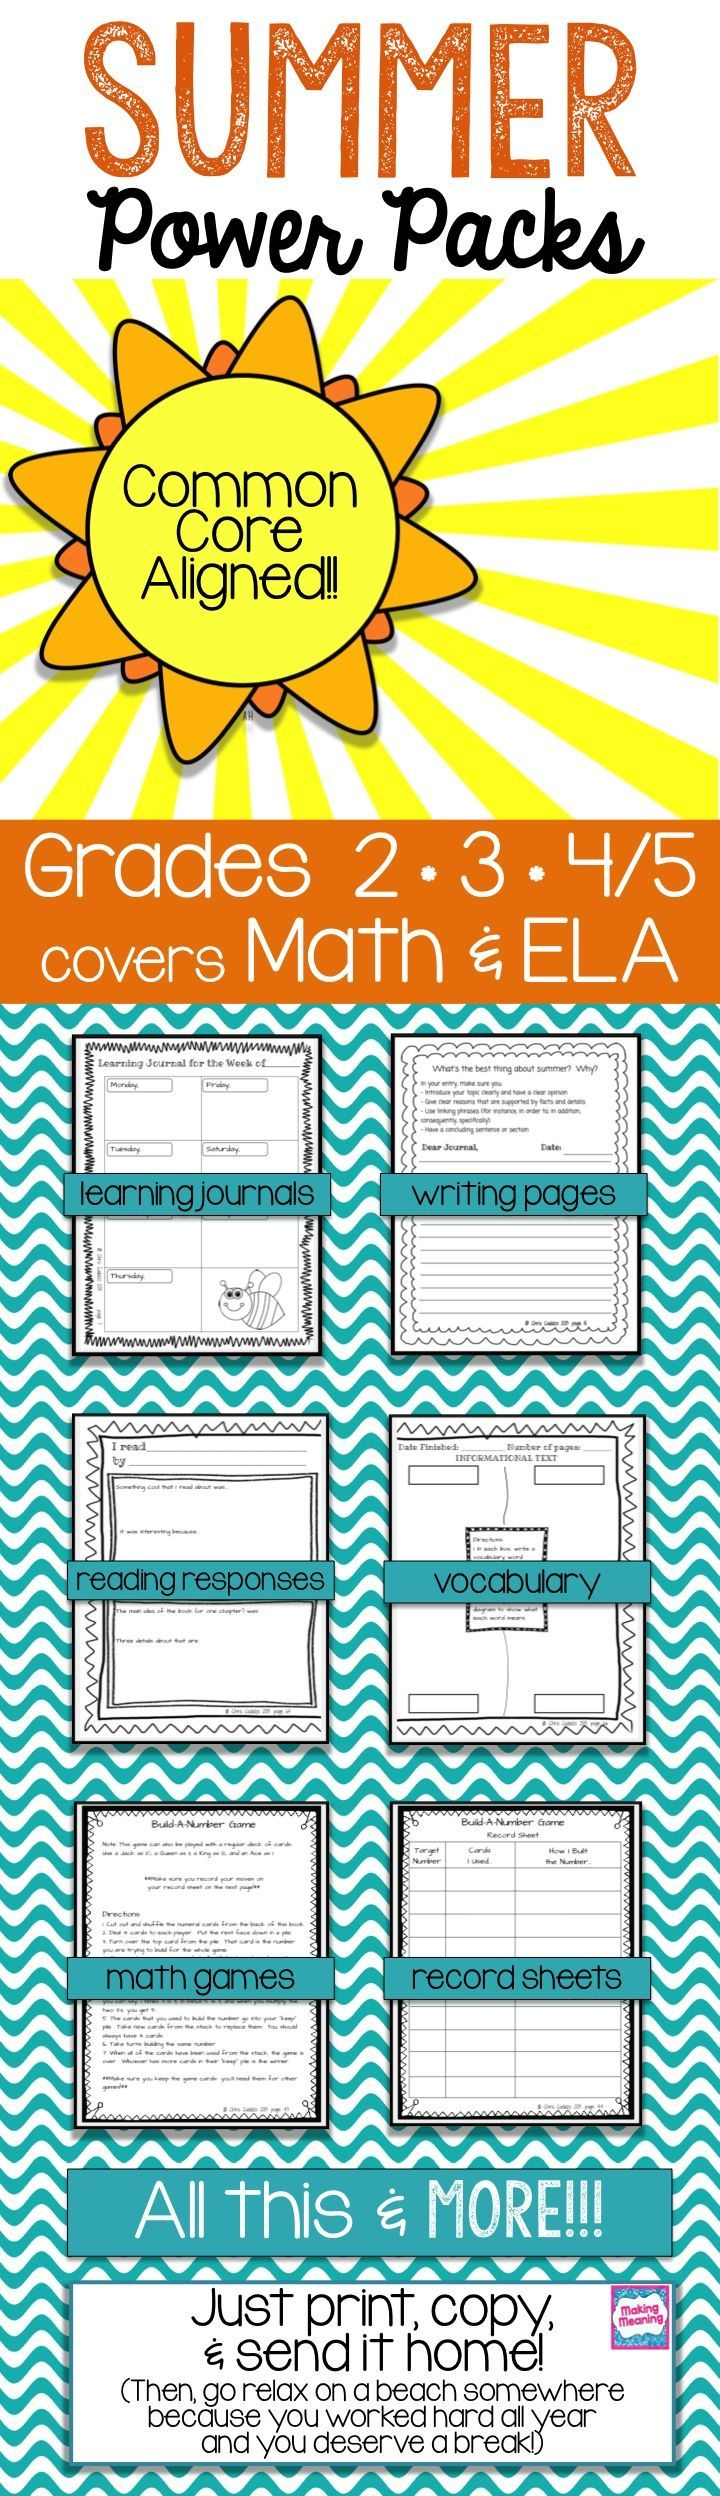 3rd grade Math summer review packet freebie by Heather 26421 - aks ...